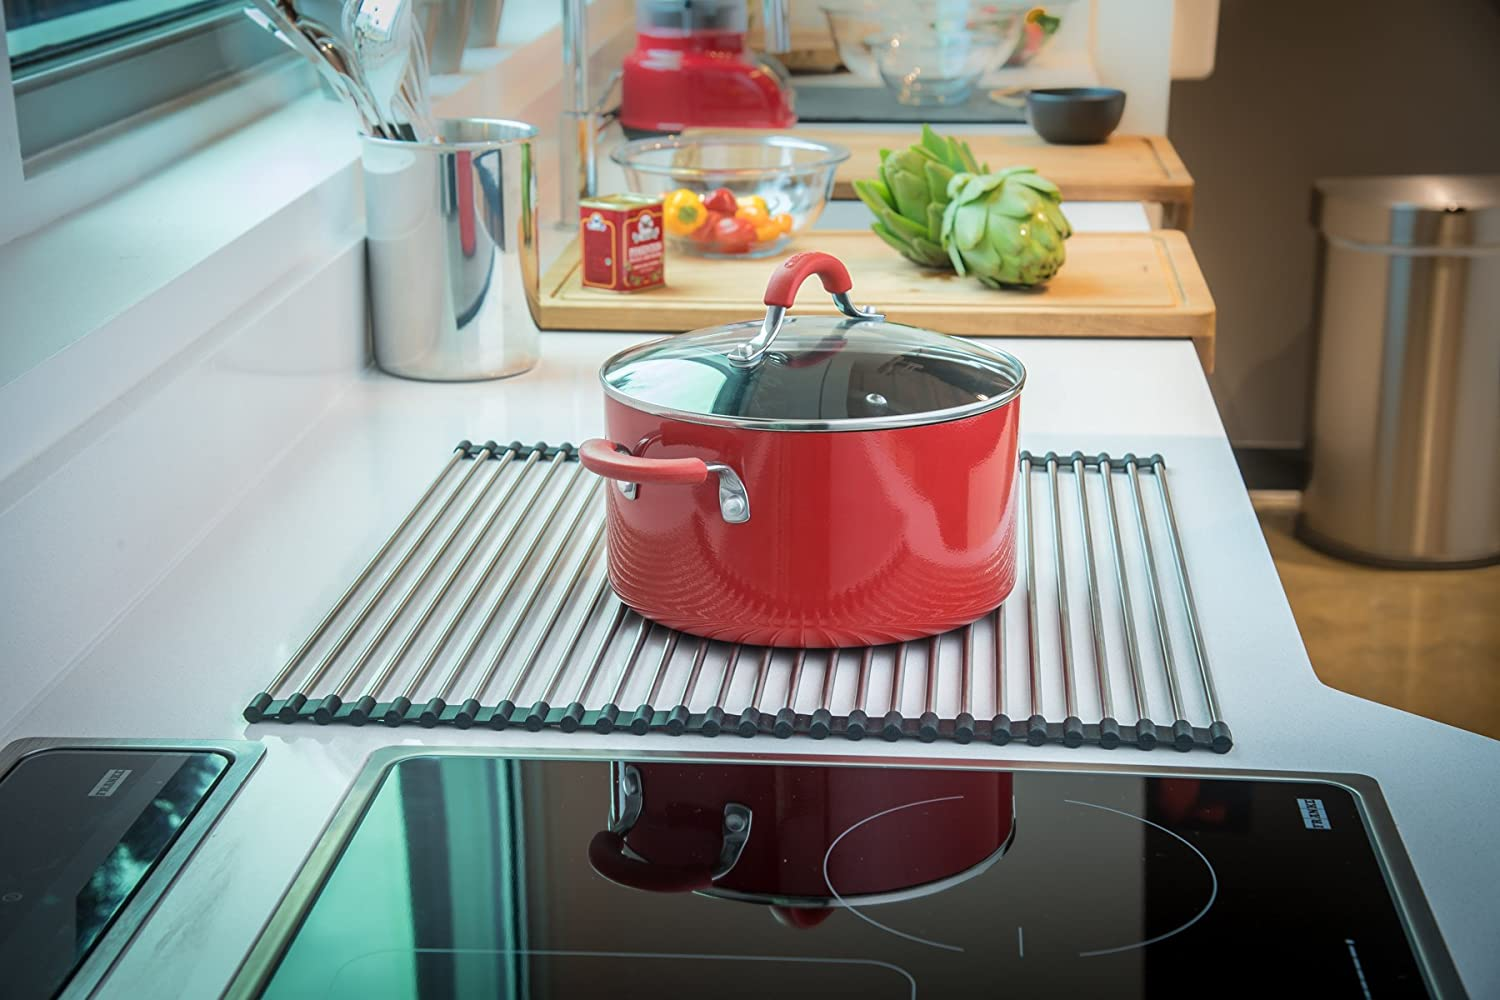 Kindred 17-Inch x 14-Inch Universal Kitchen Sink Stainless Steel Roller Mat FRM100 Dish Drying Rack or Trivet